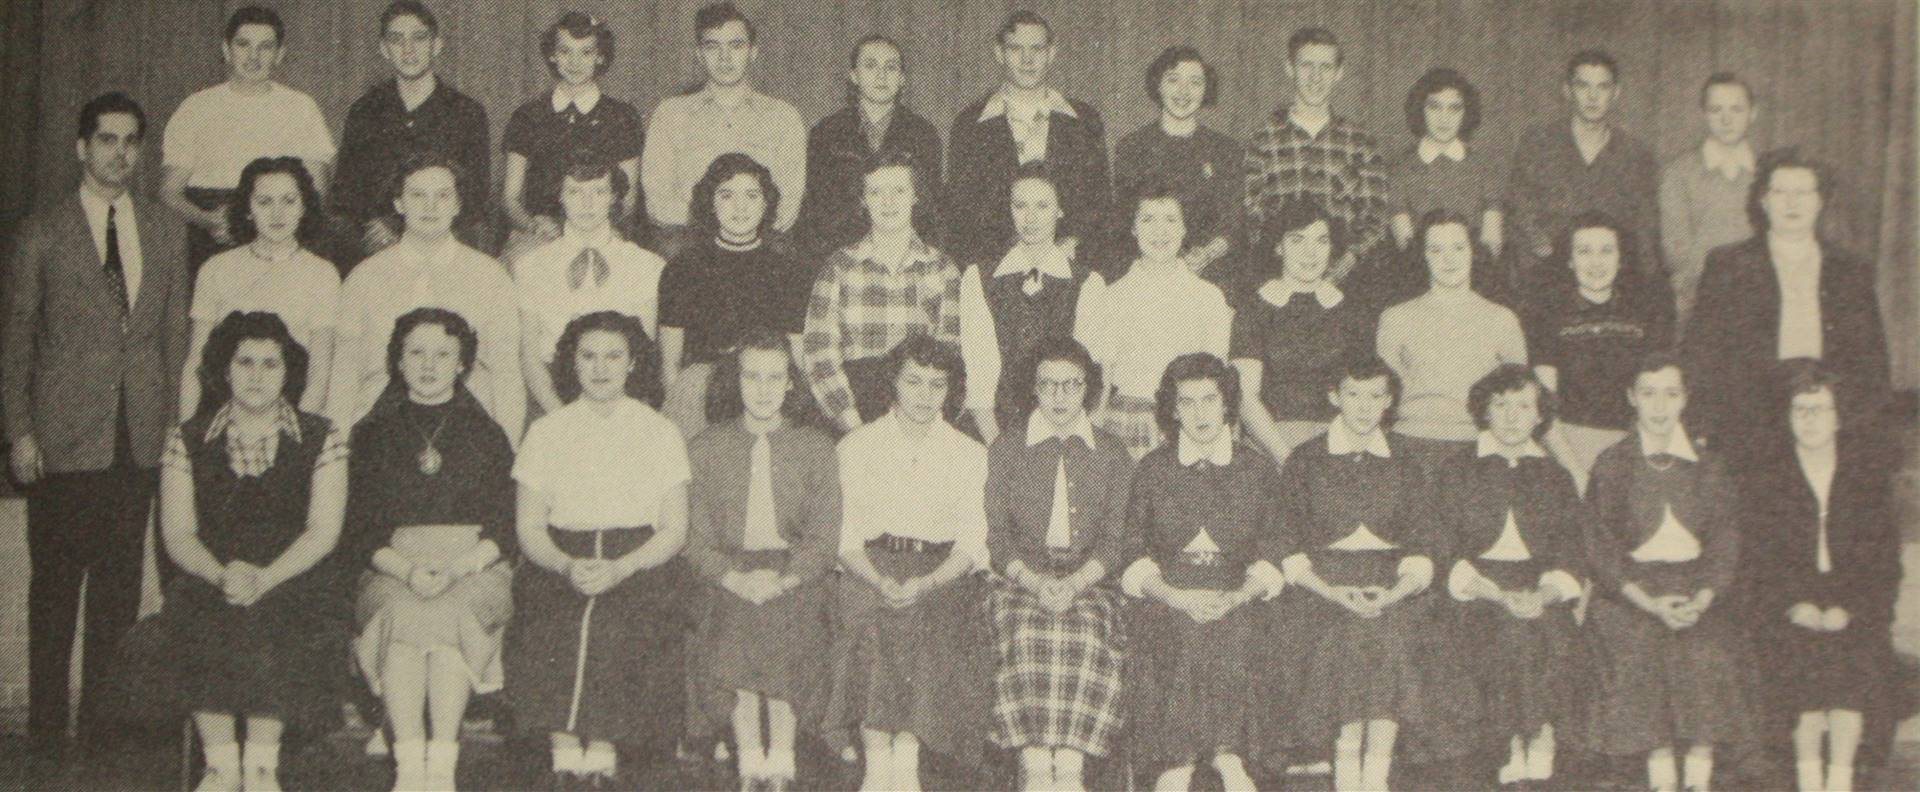 1953 future teachers of america